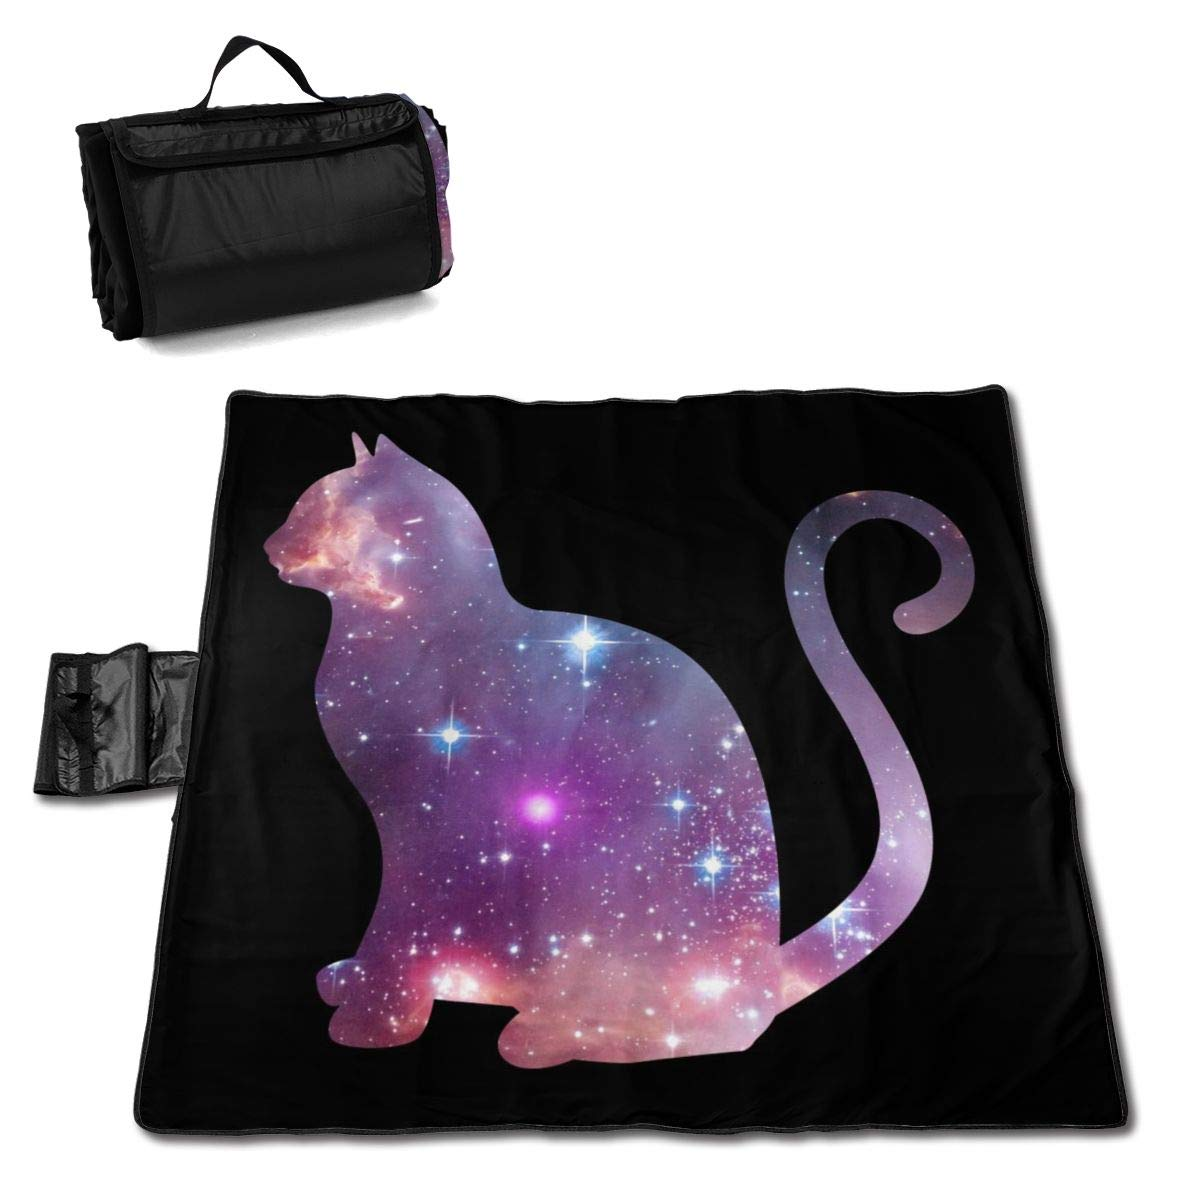 Socira Space Kitty Large Picnic Blanket Water Resistant Beach Blanket Machine Washable Outdoor Blanket Folds Into A Tote Bag by Socira